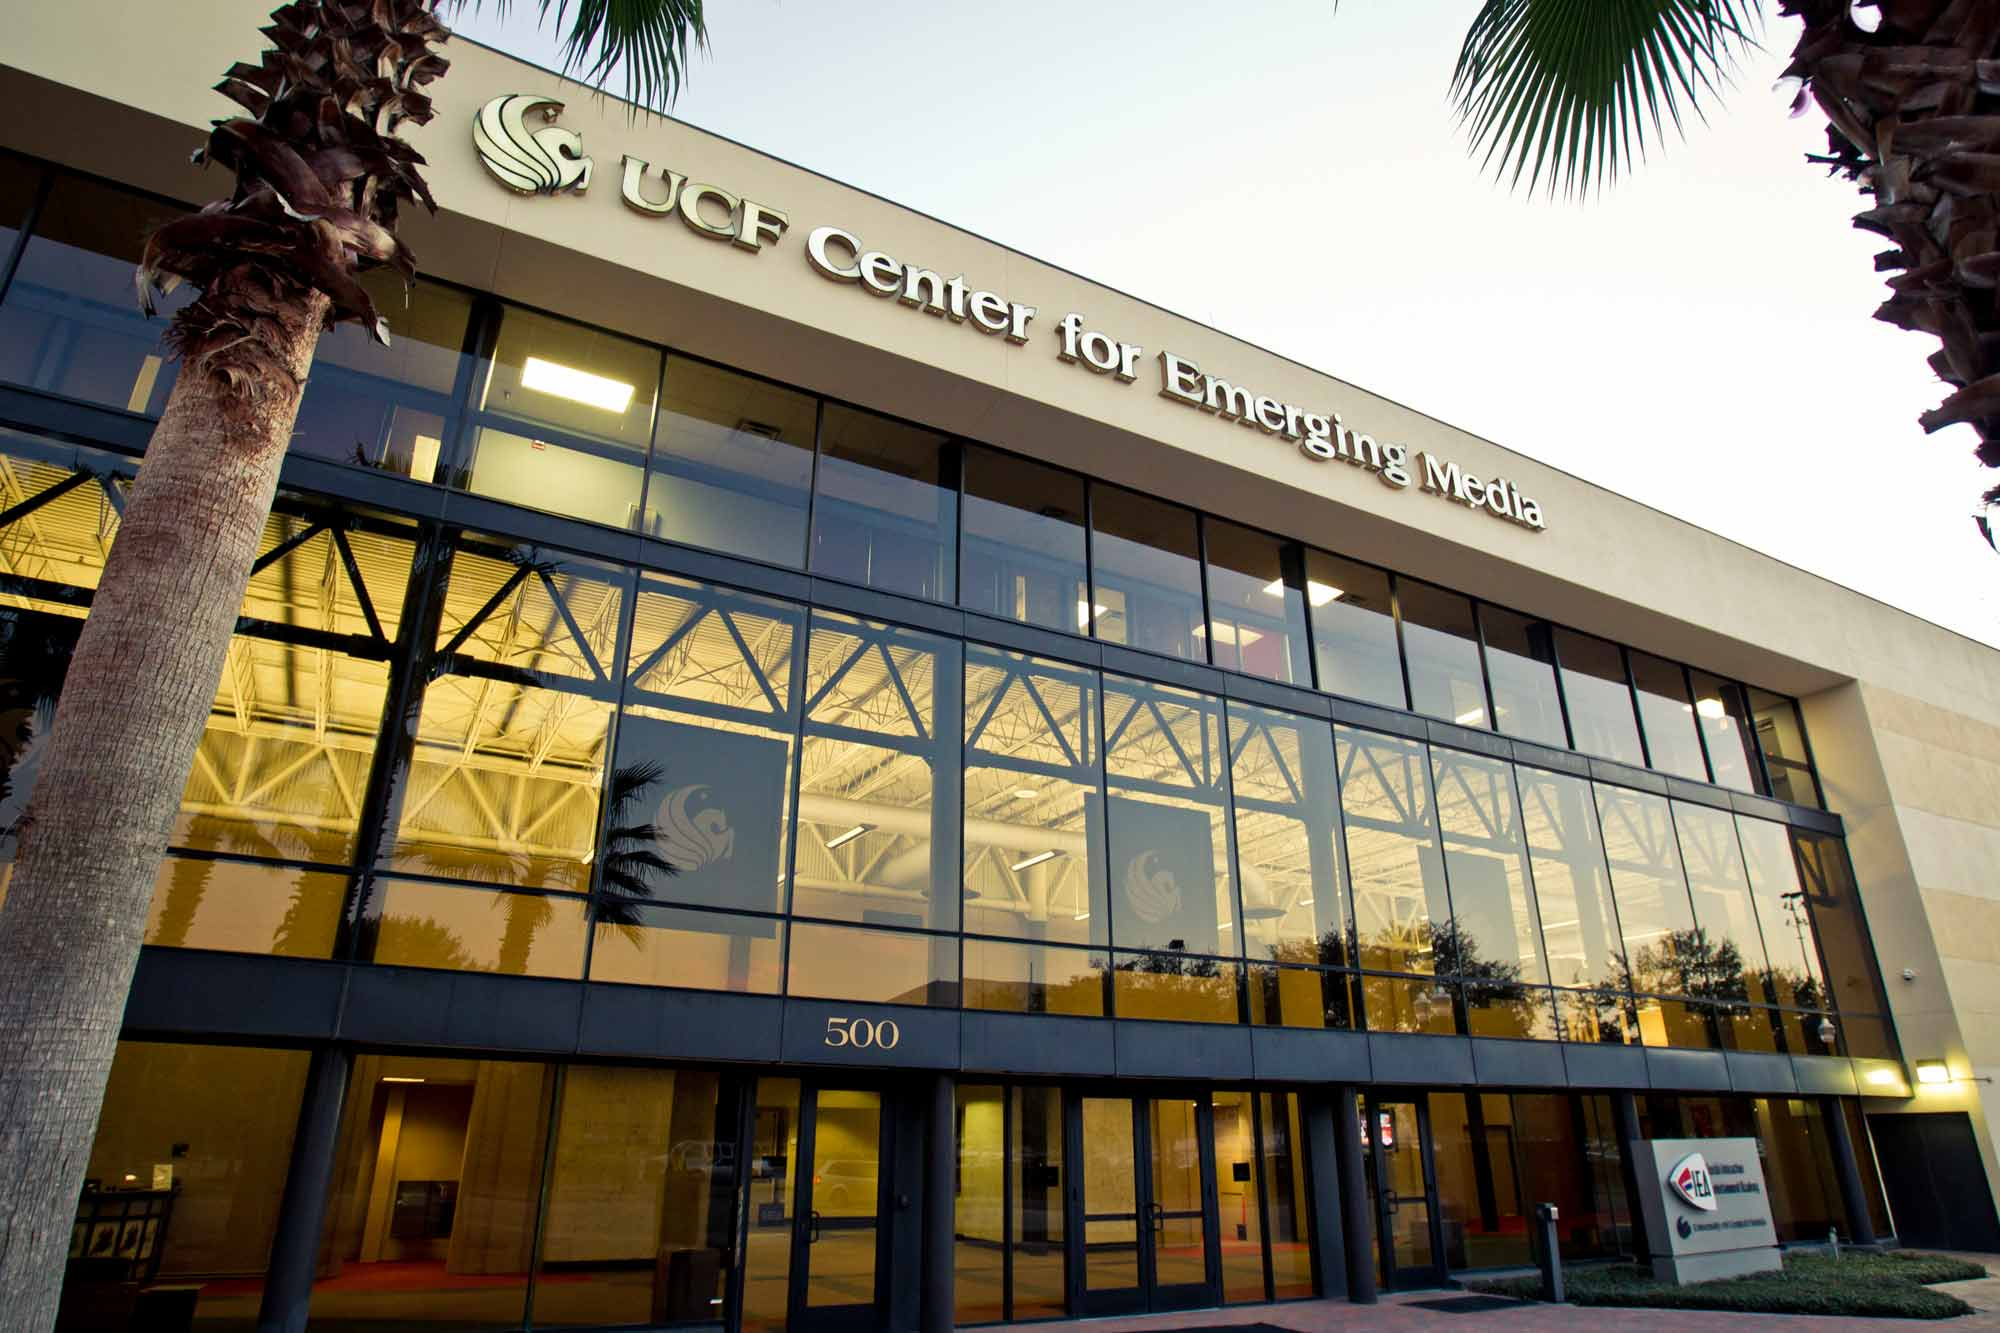 The UCF Center for Emerging Media is located in downtown Orlando and home to a variety of academic, artistic and innovative programs.